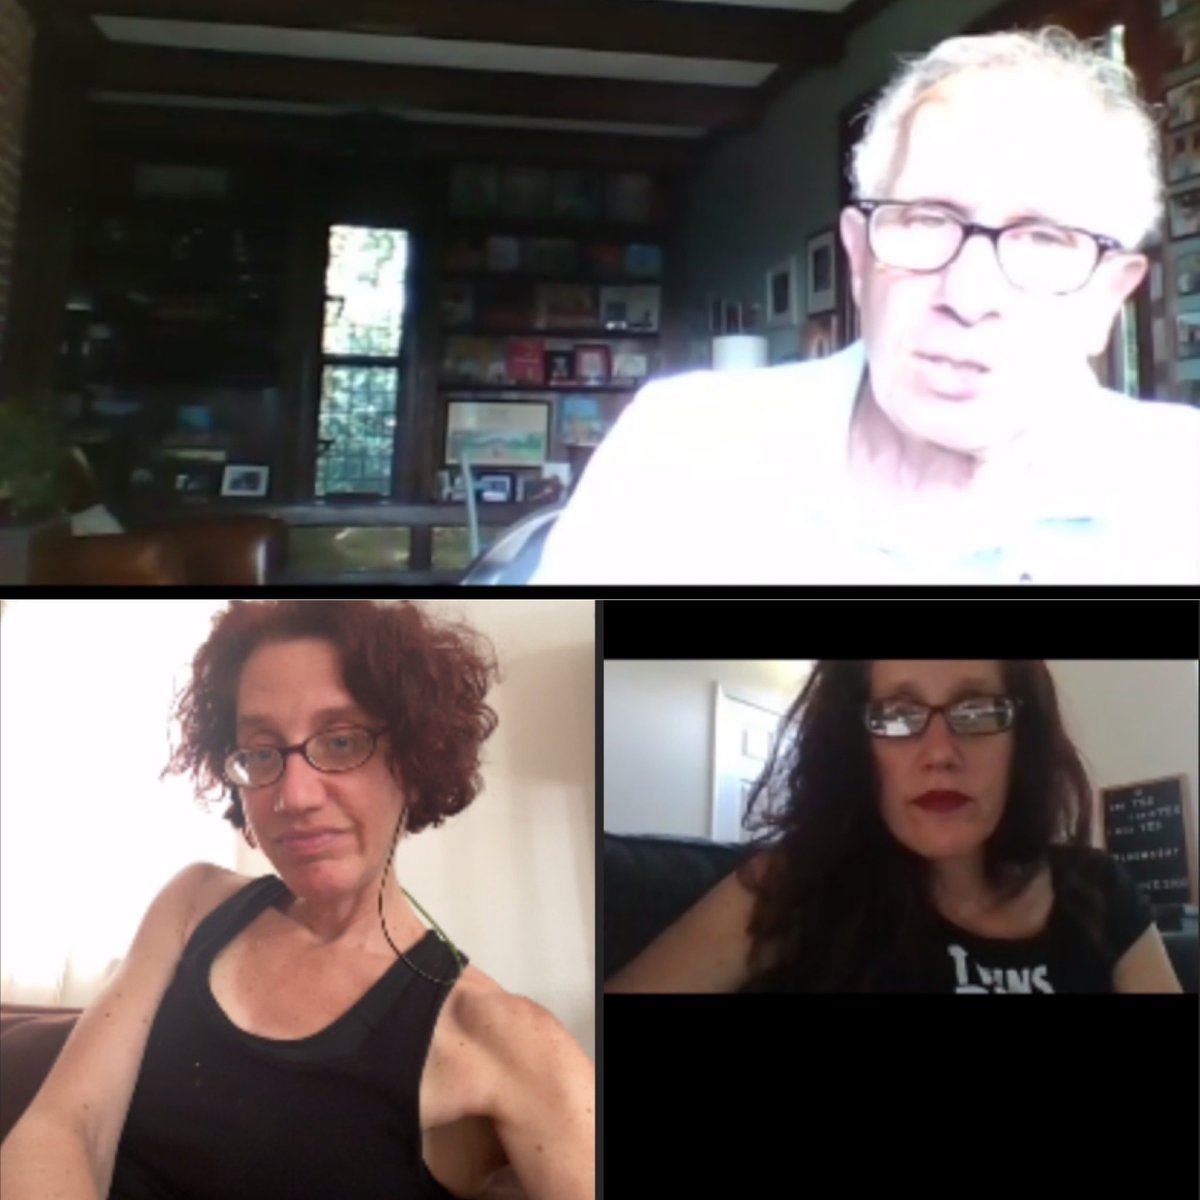 Thanks to @CoachZoni for offering the @runcville meeting on Zoom!  It was as great to meet other runners & see @LeahCville again!  P.S. Sign me up if you offer a socially distanced Rivanna Greenbelt Marathon this year! pic.twitter.com/k1S8PdC91w